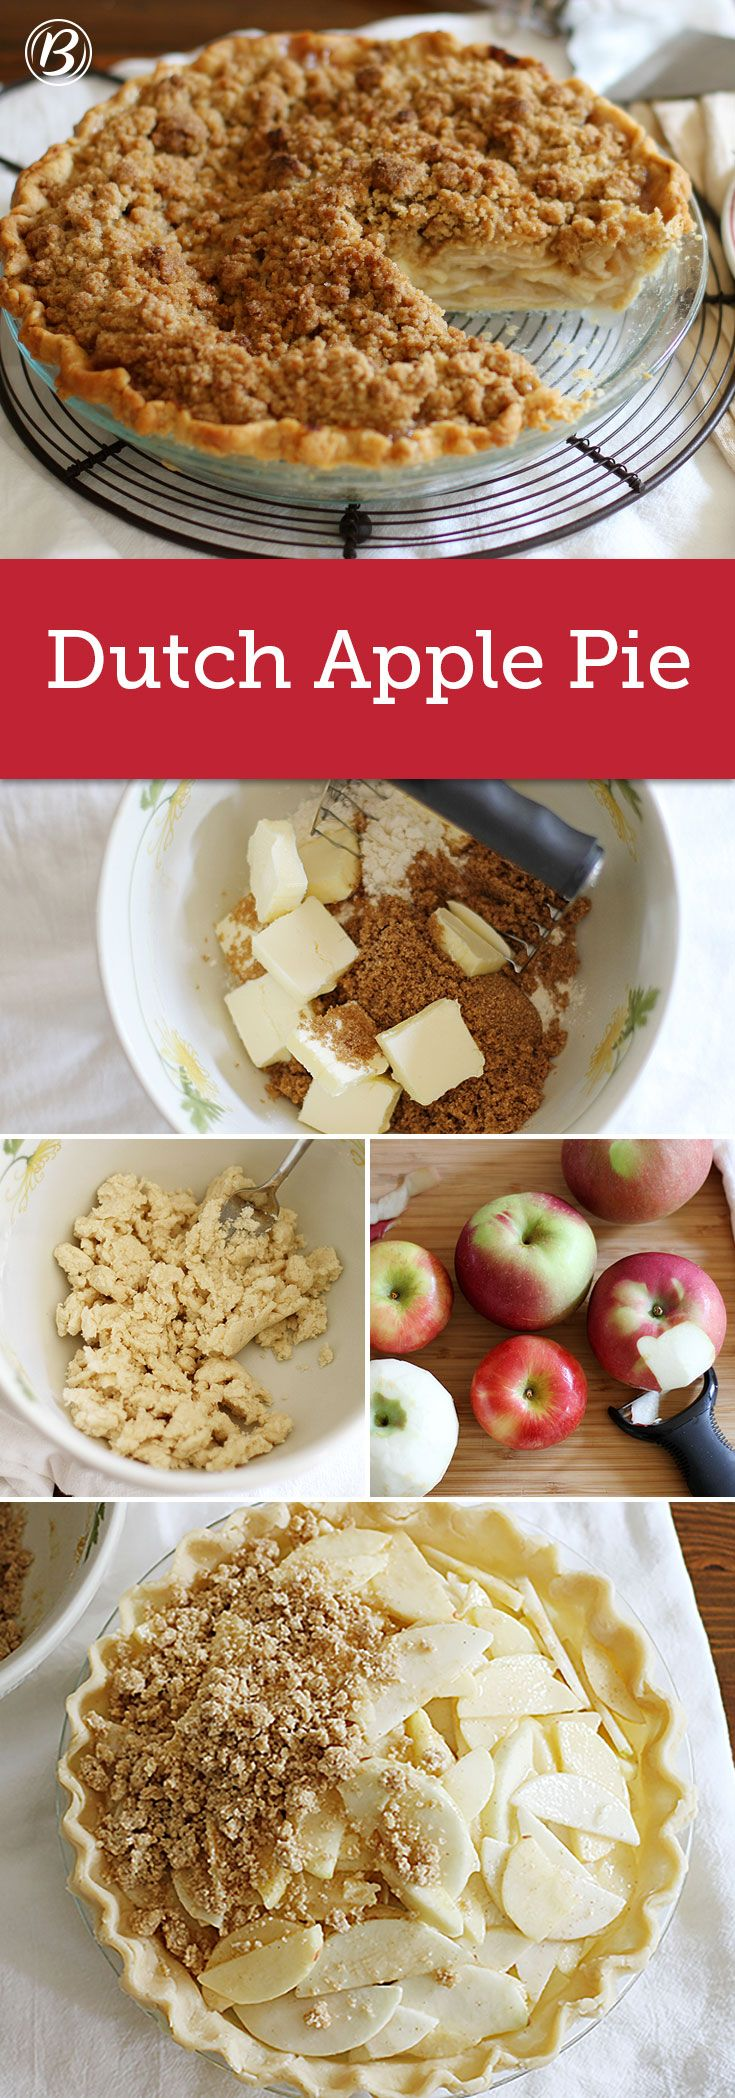 Celebrate apple season and bake up this classic crumble-topped apple pie today. Planning ahead for Thanksgiving? This pie will keep frozen, wrapped in plastic wrap and then again in foil, for up to 3 months.                                                                                                                                                     More